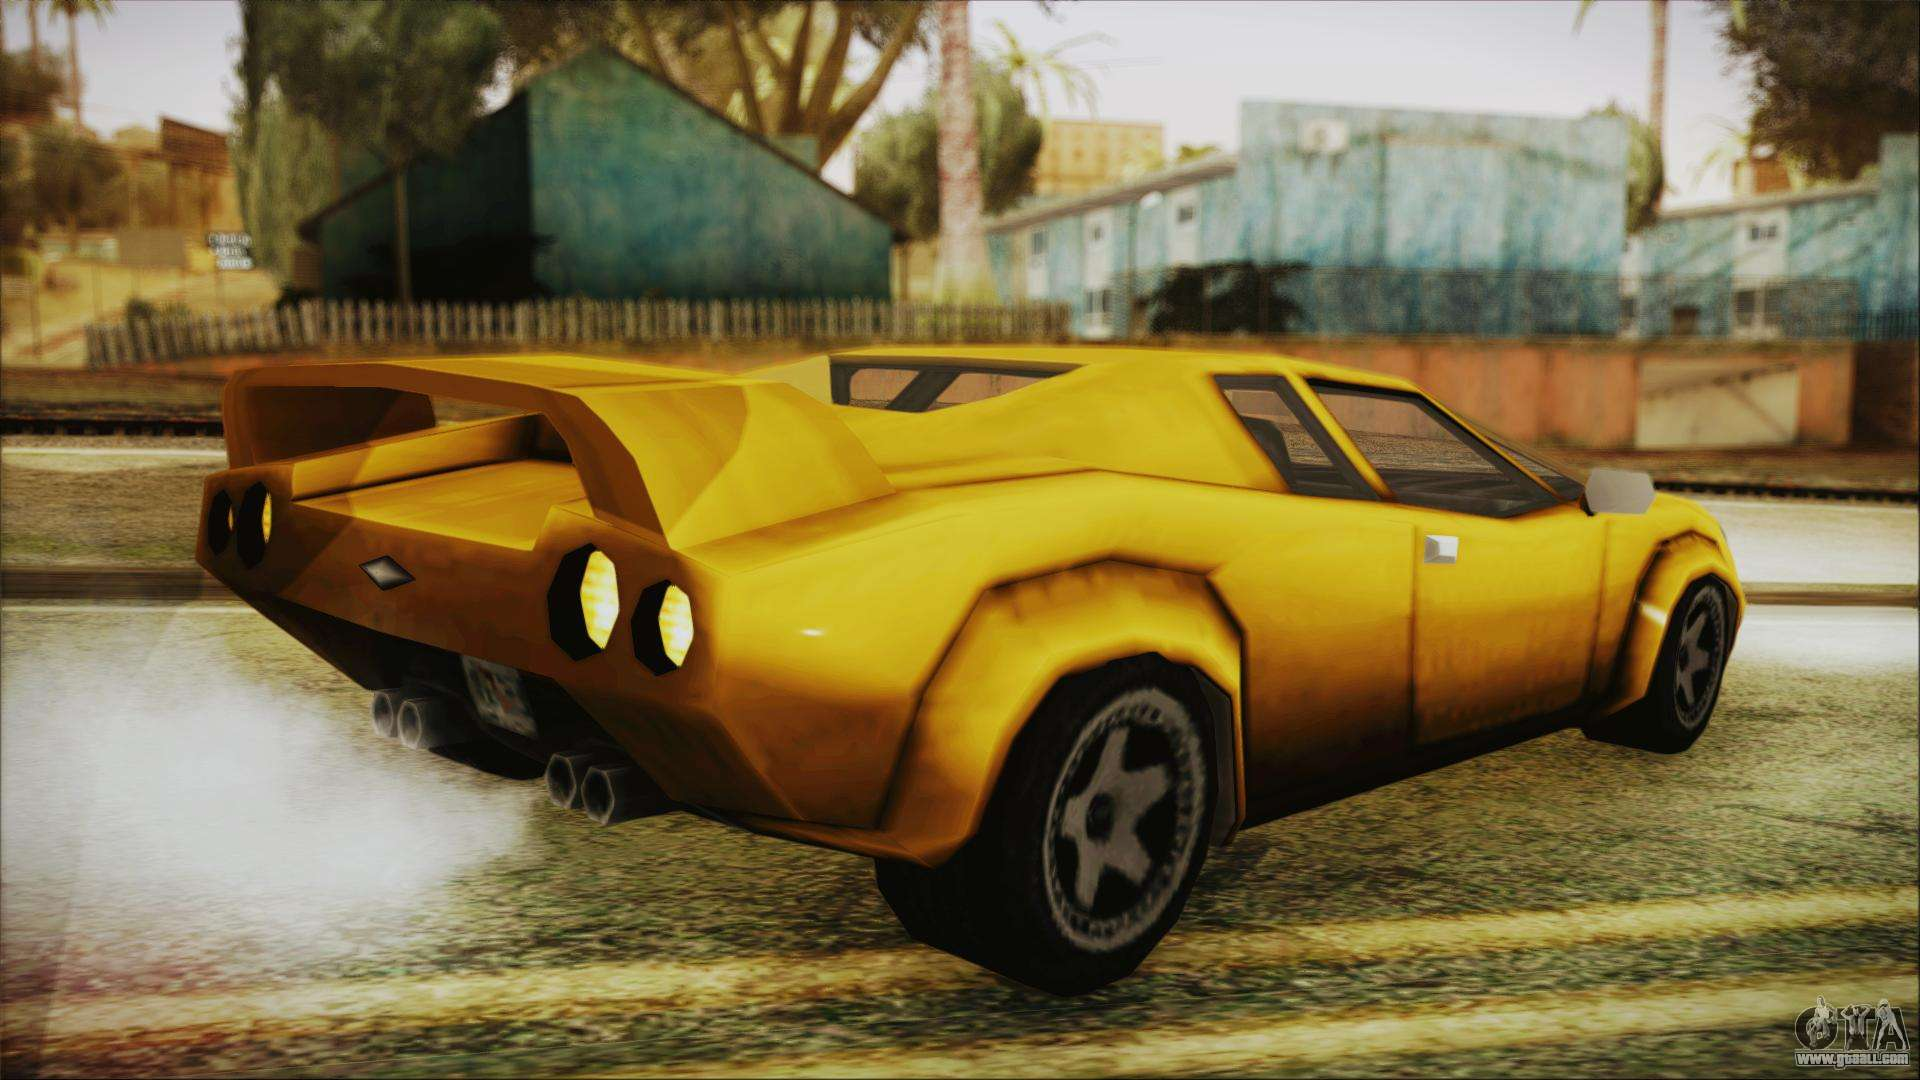 Gta vice city infernus speed mod download : Knc coin design